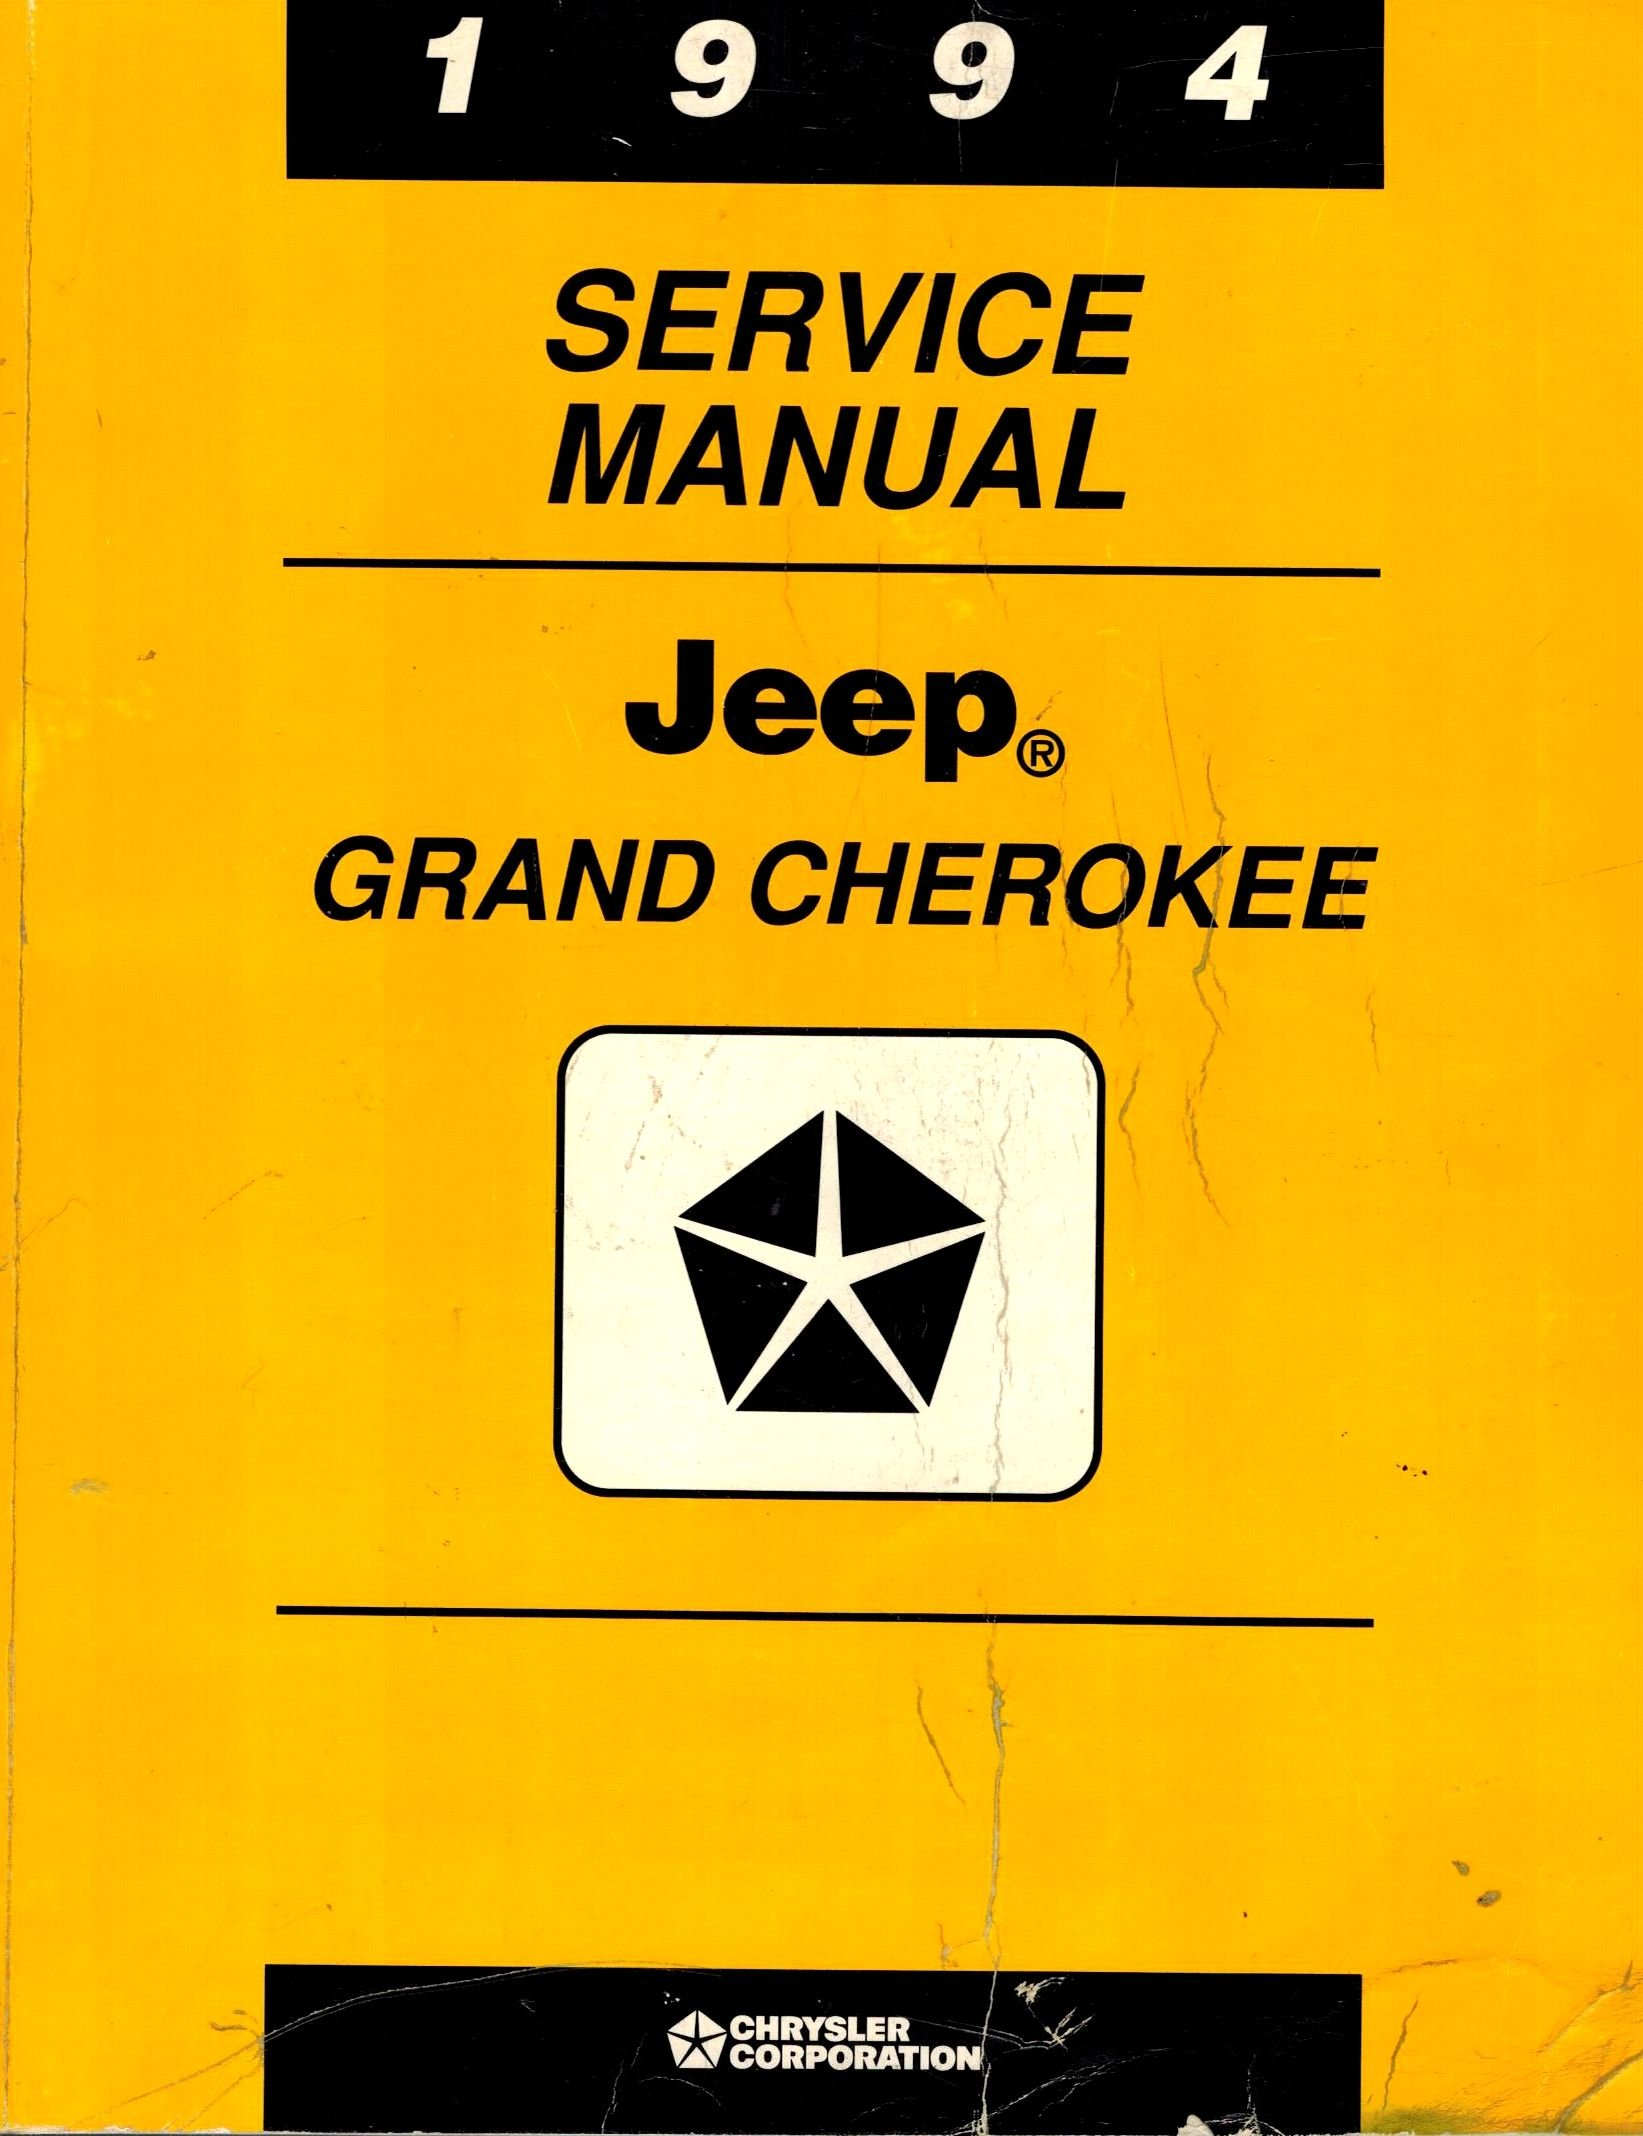 1994 Service Manual Jeep Grand Cherokee: Chrysler Corp: Amazon.com: Books